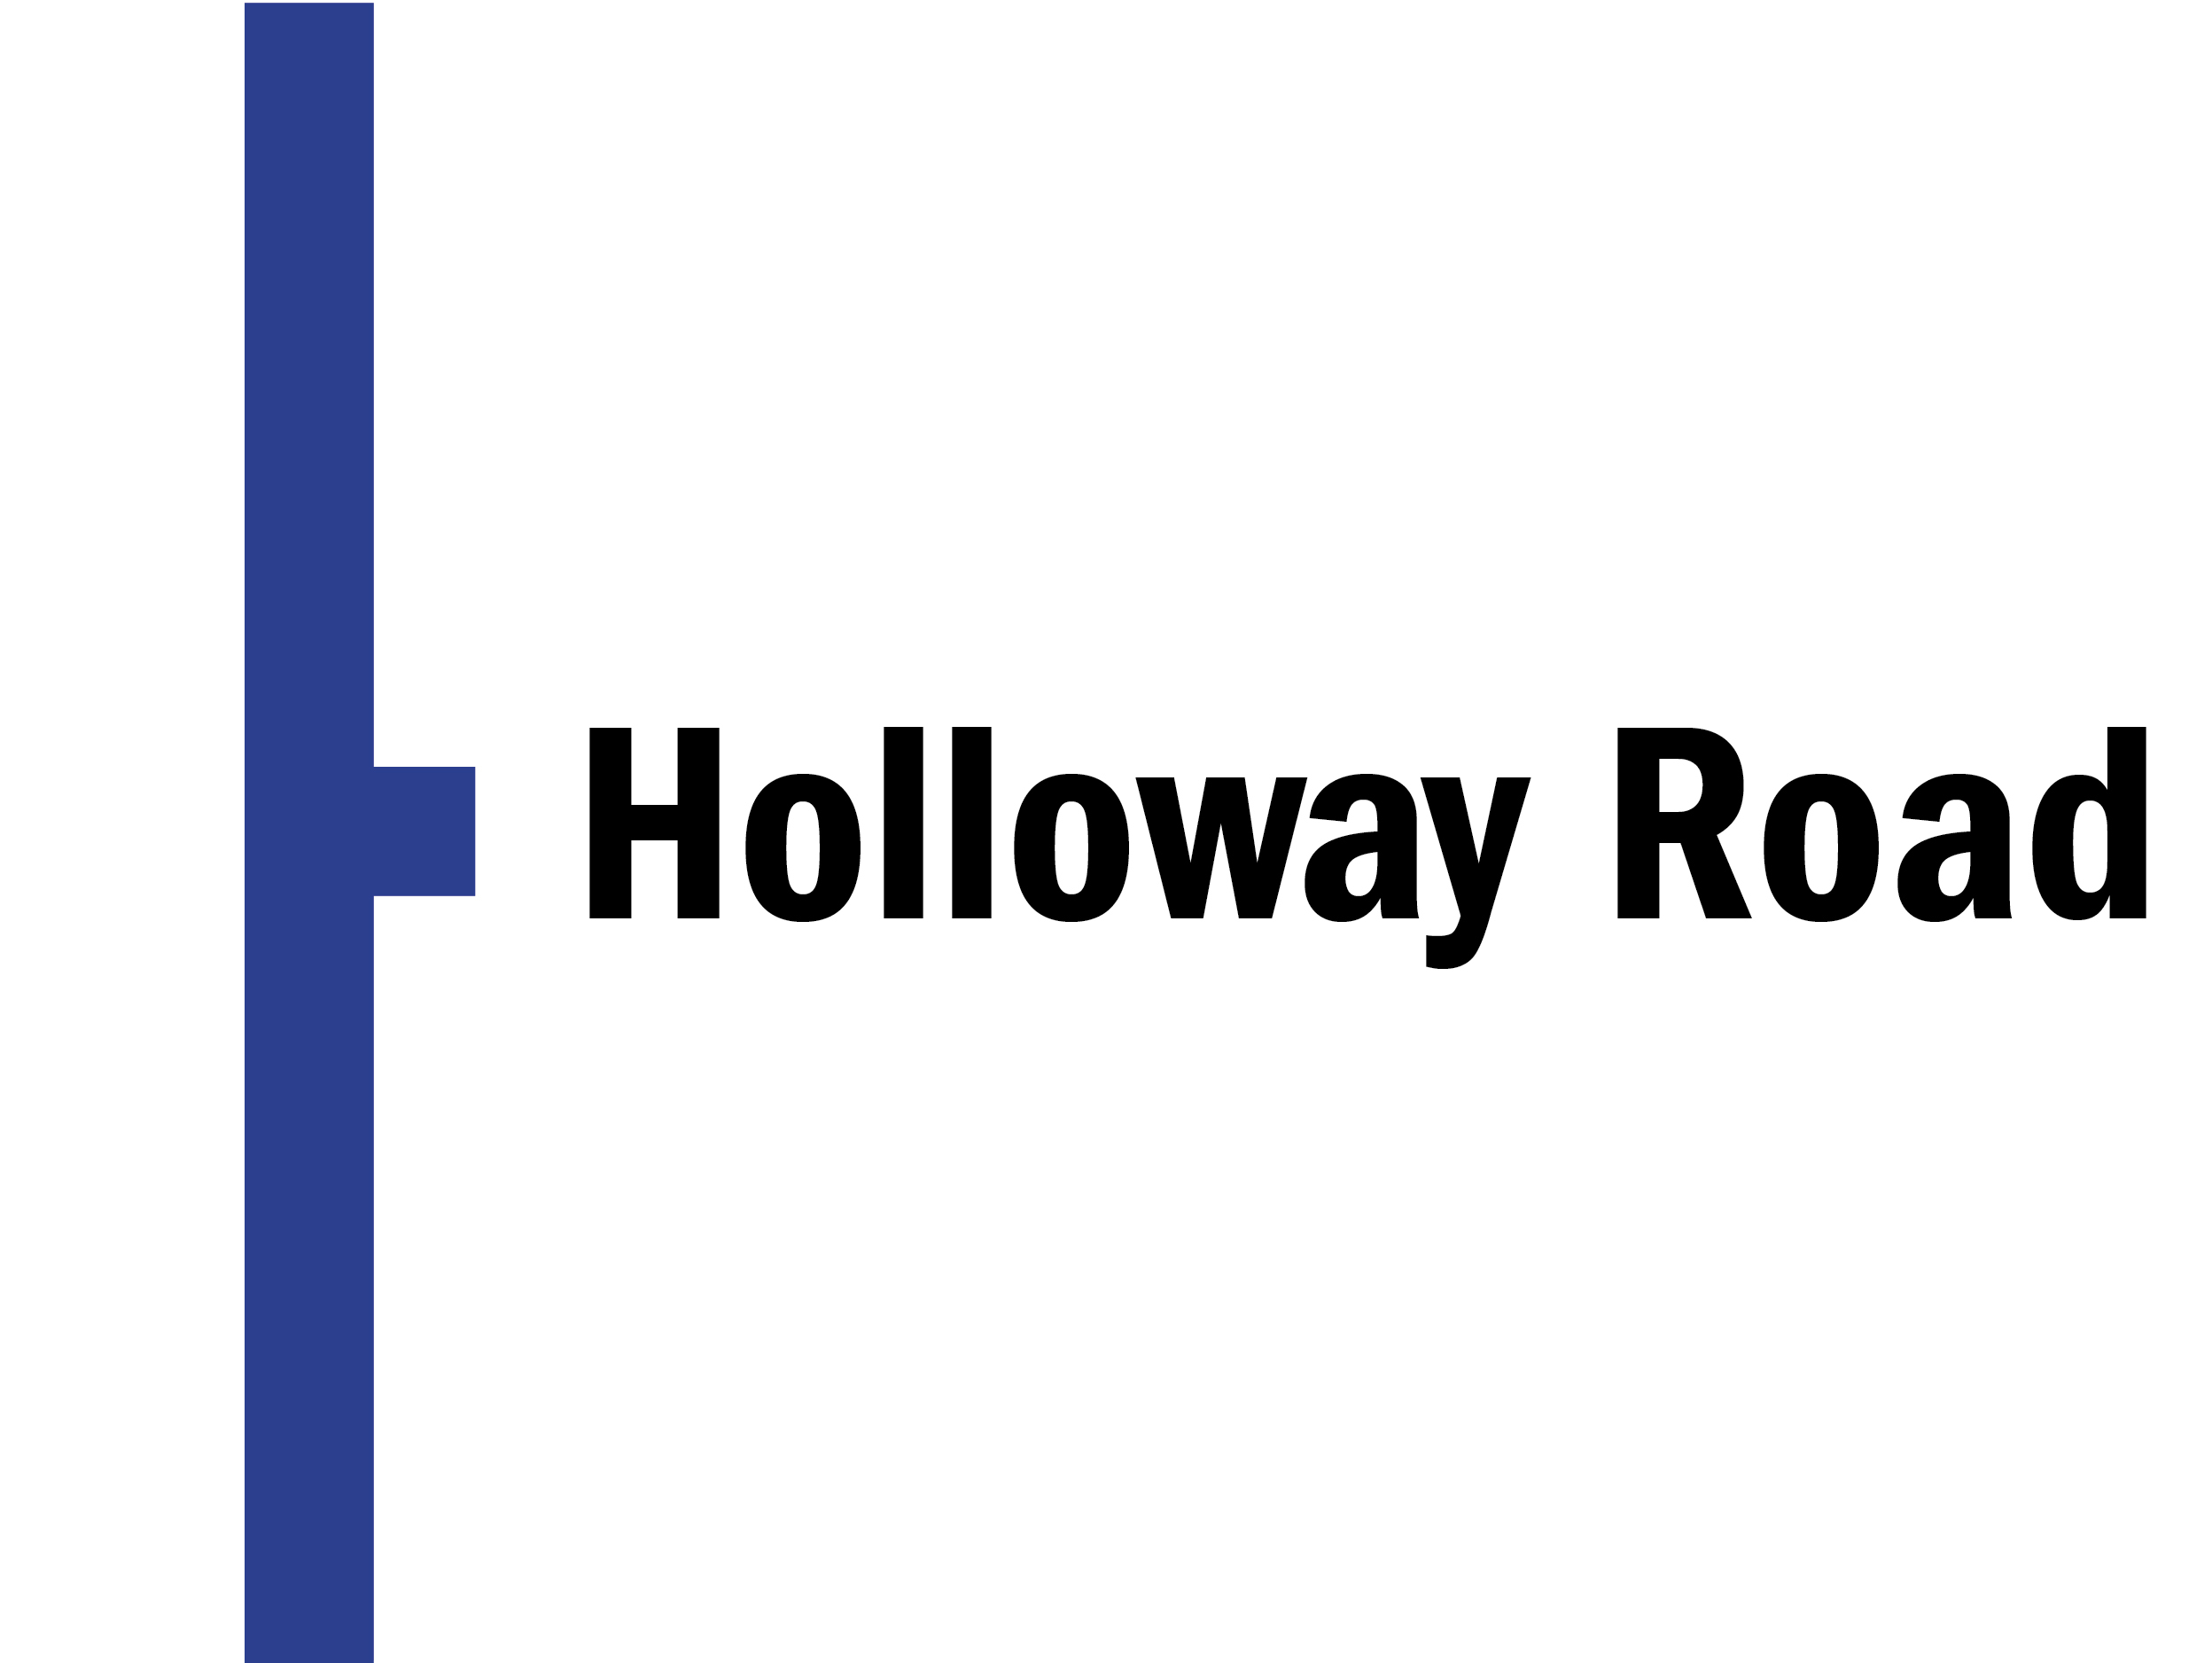 Holloway Road, Piccadilly Line